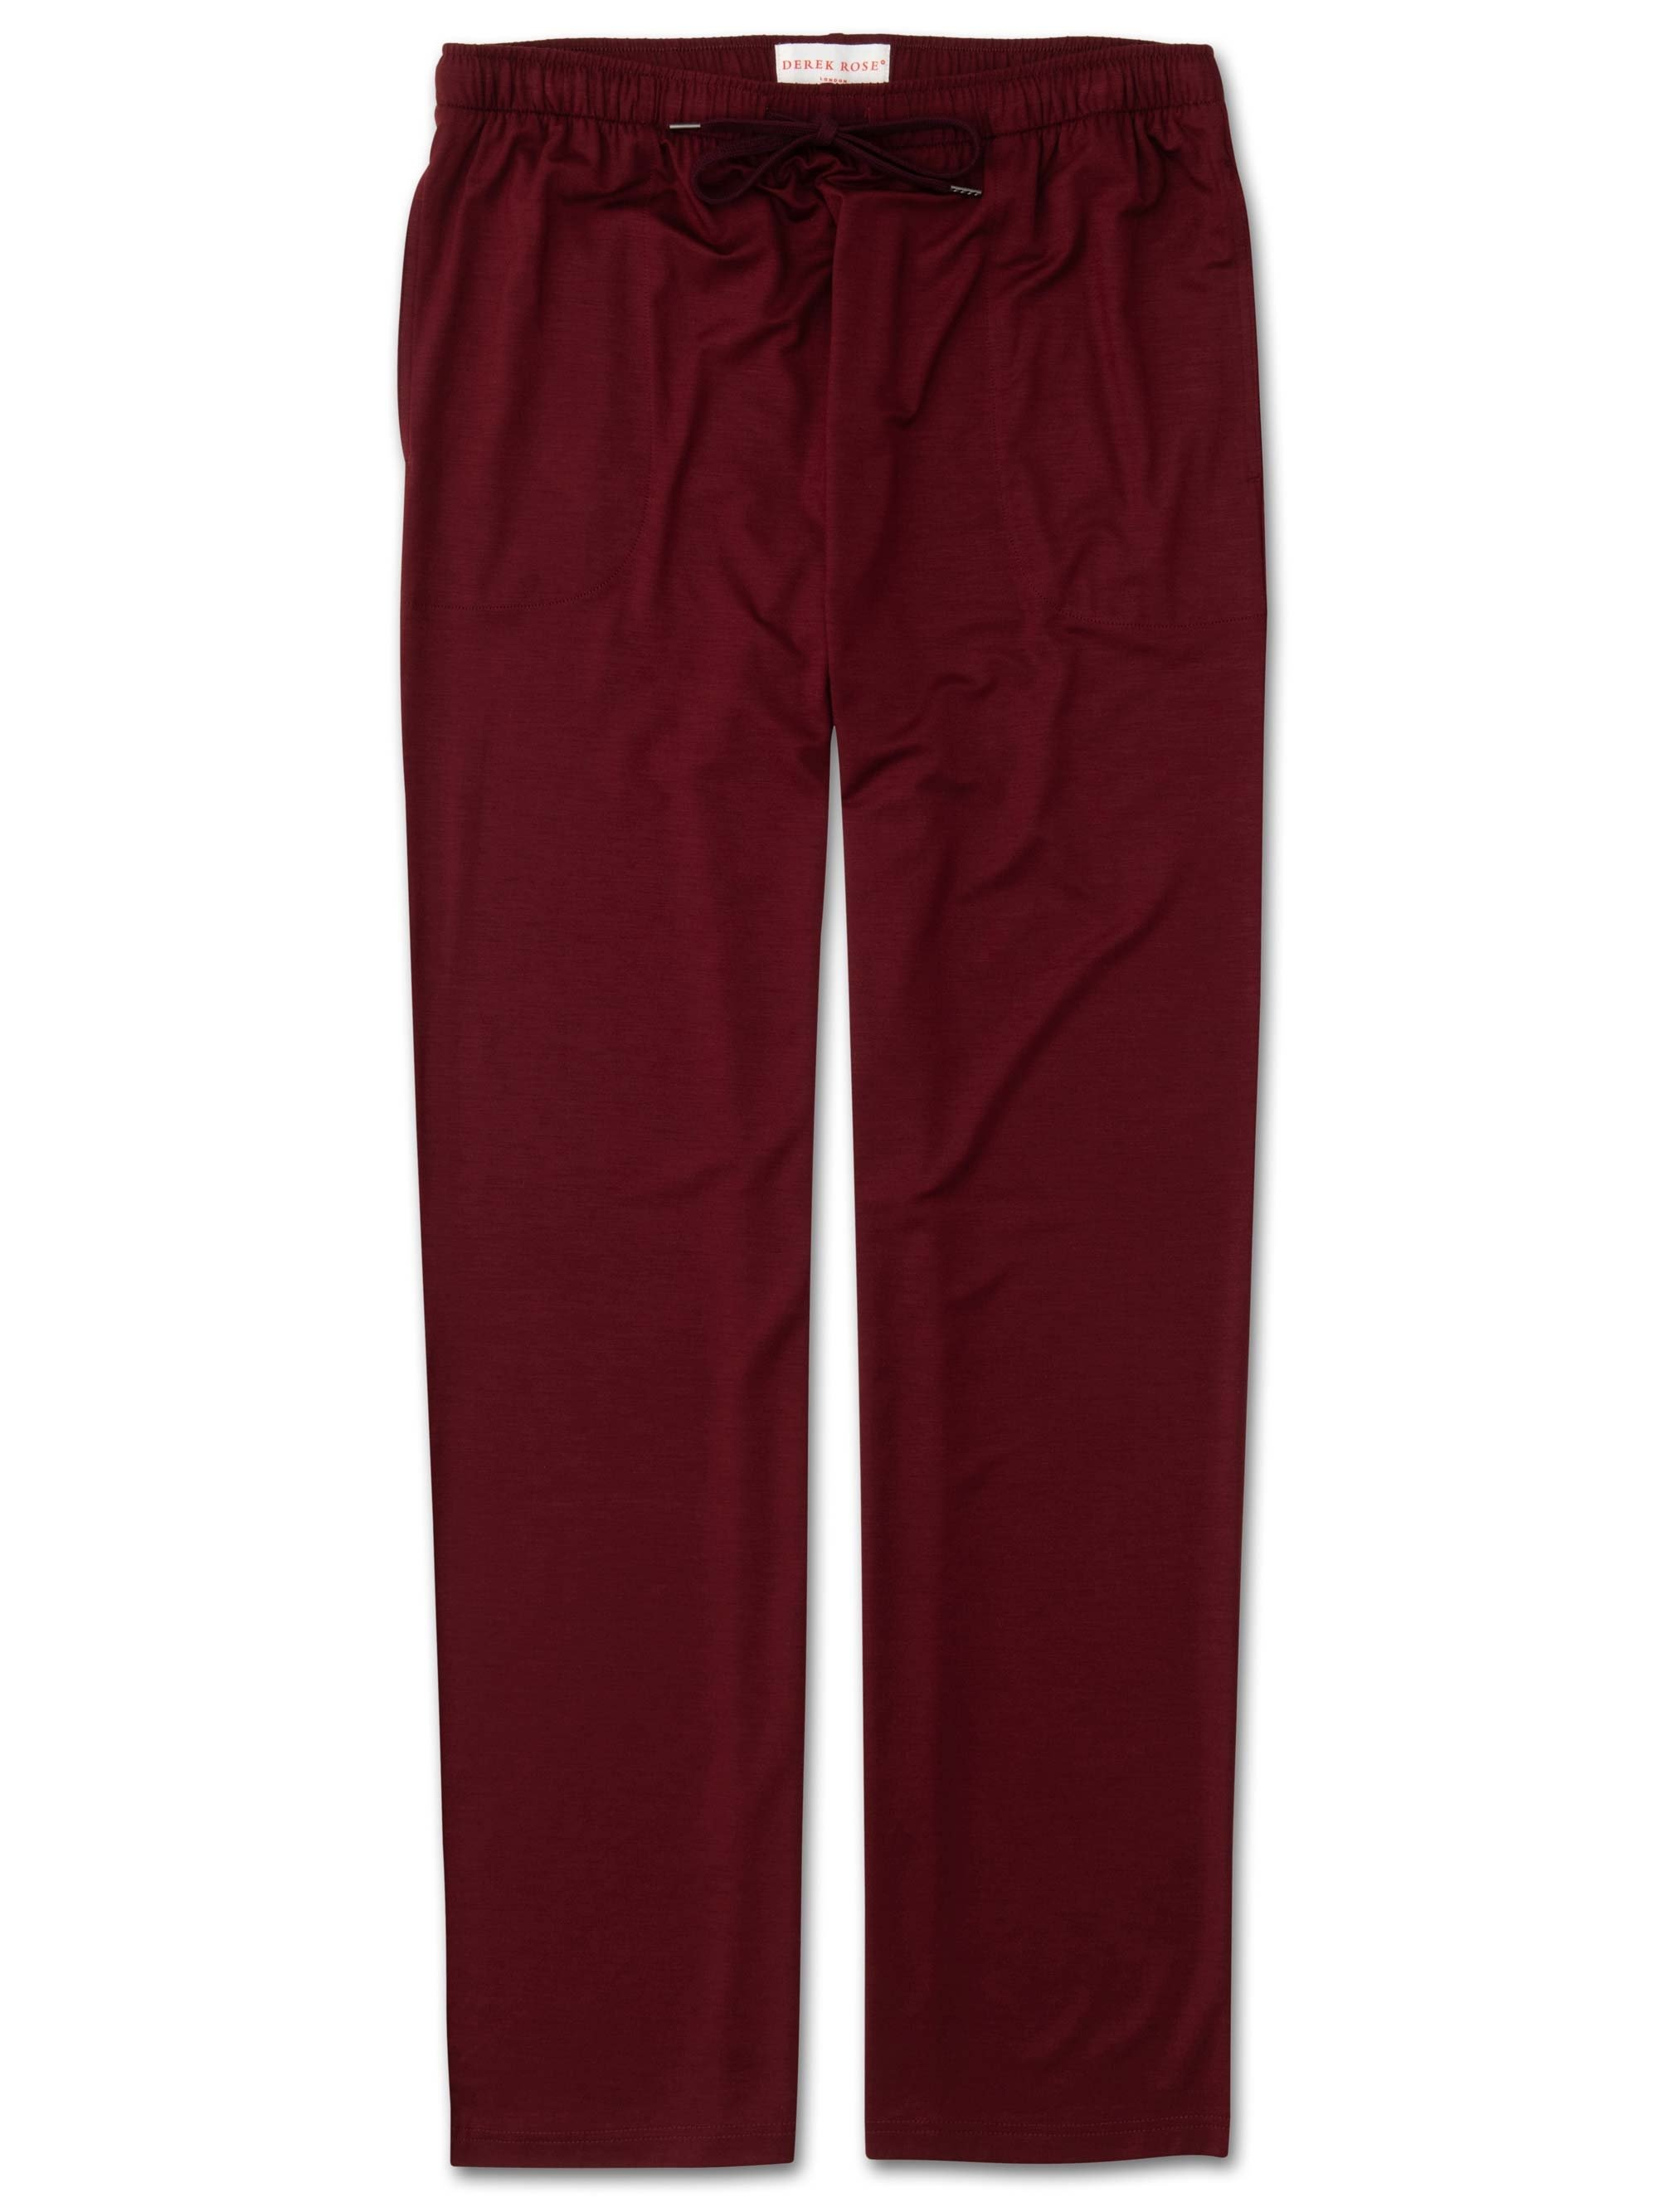 Men's Jersey Trousers Basel 7 Micro Modal Stretch Burgundy